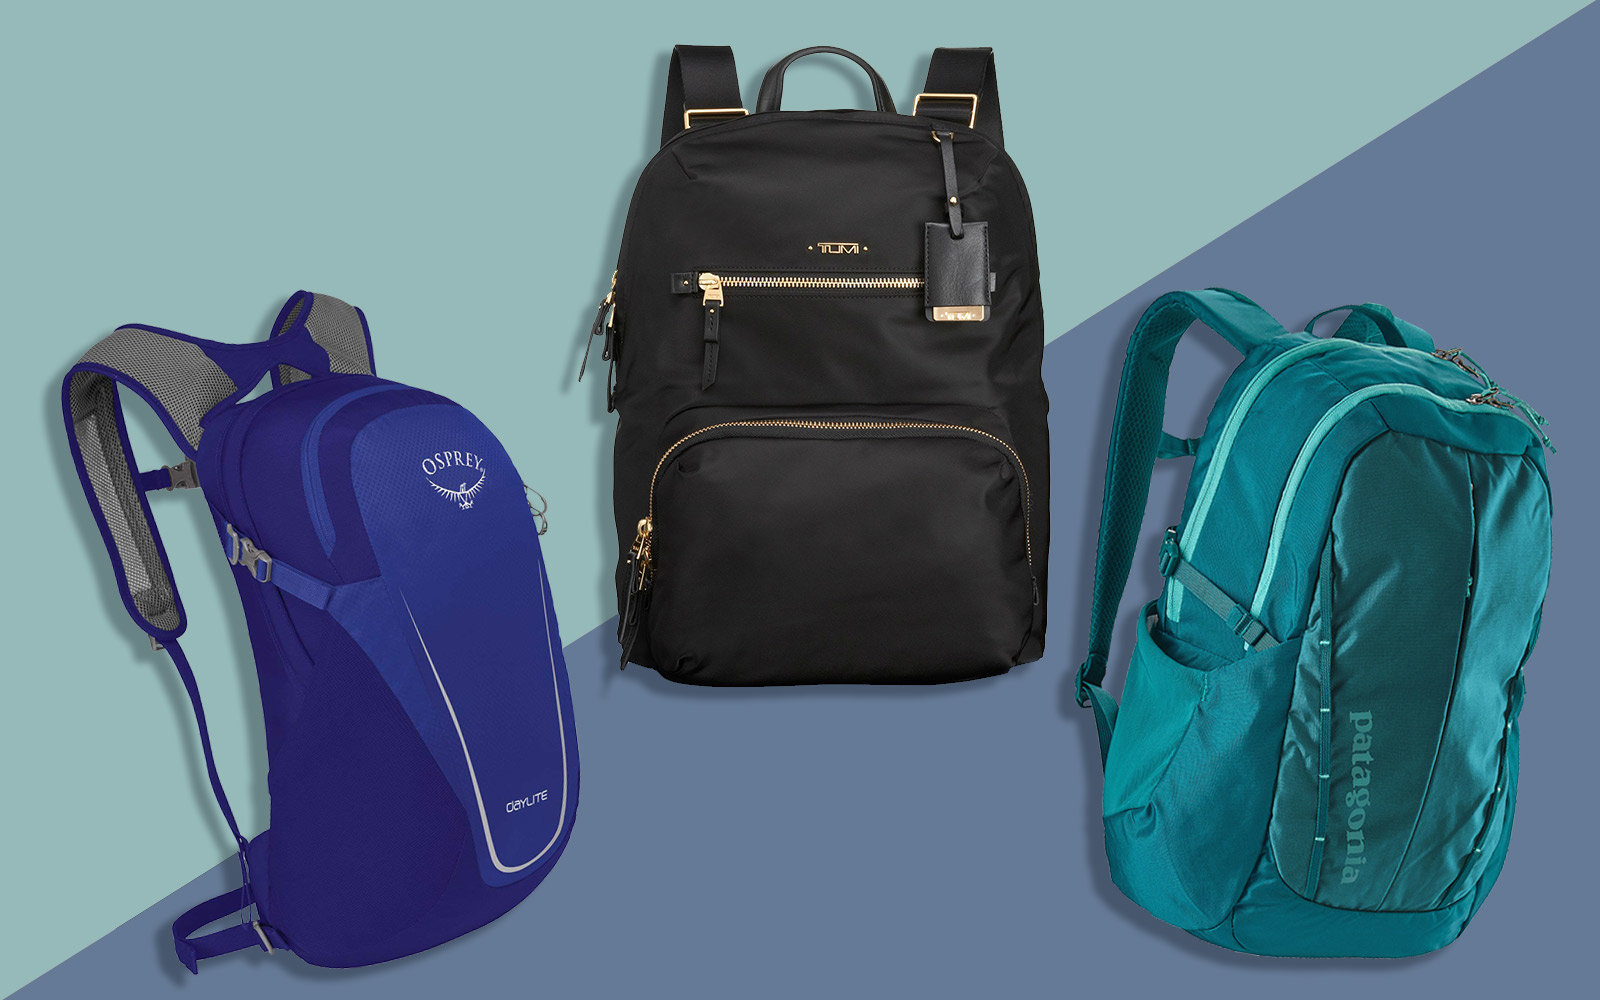 The Best Daypacks for Travel in 2019  4c17b5f5f2b6e